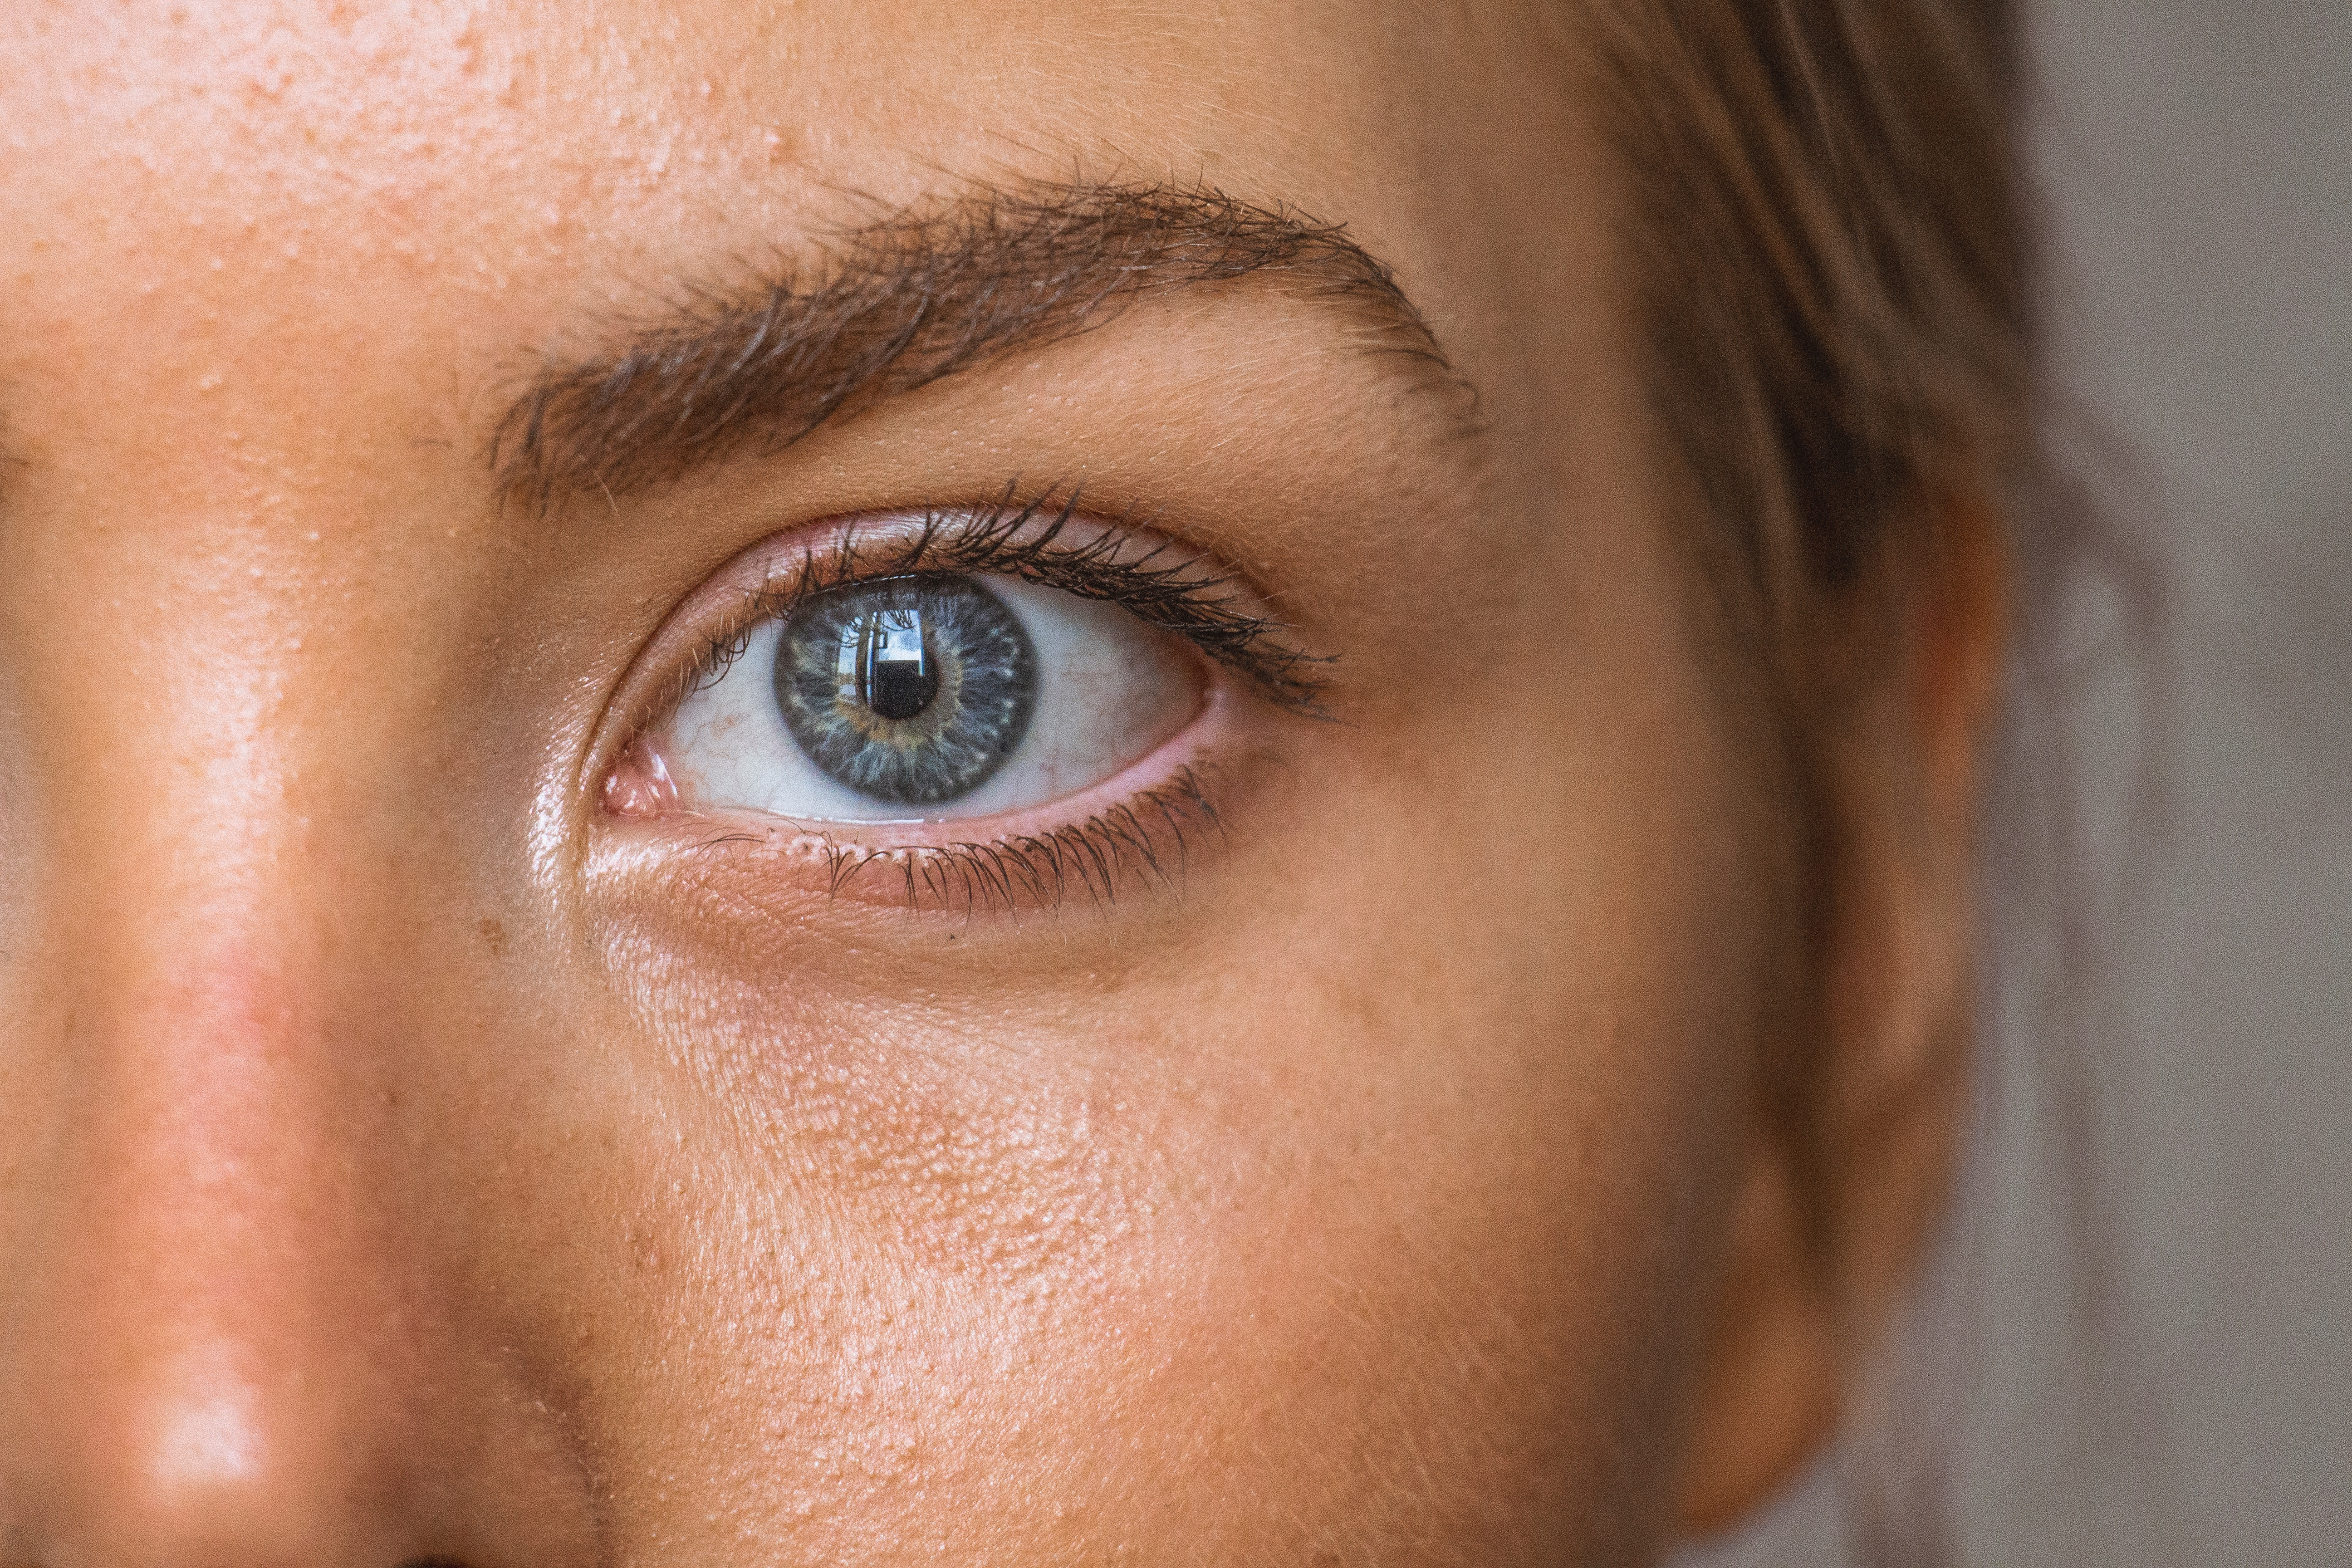 Eye Twitching Can Indicate Fatigue, Nutritional Deficiency